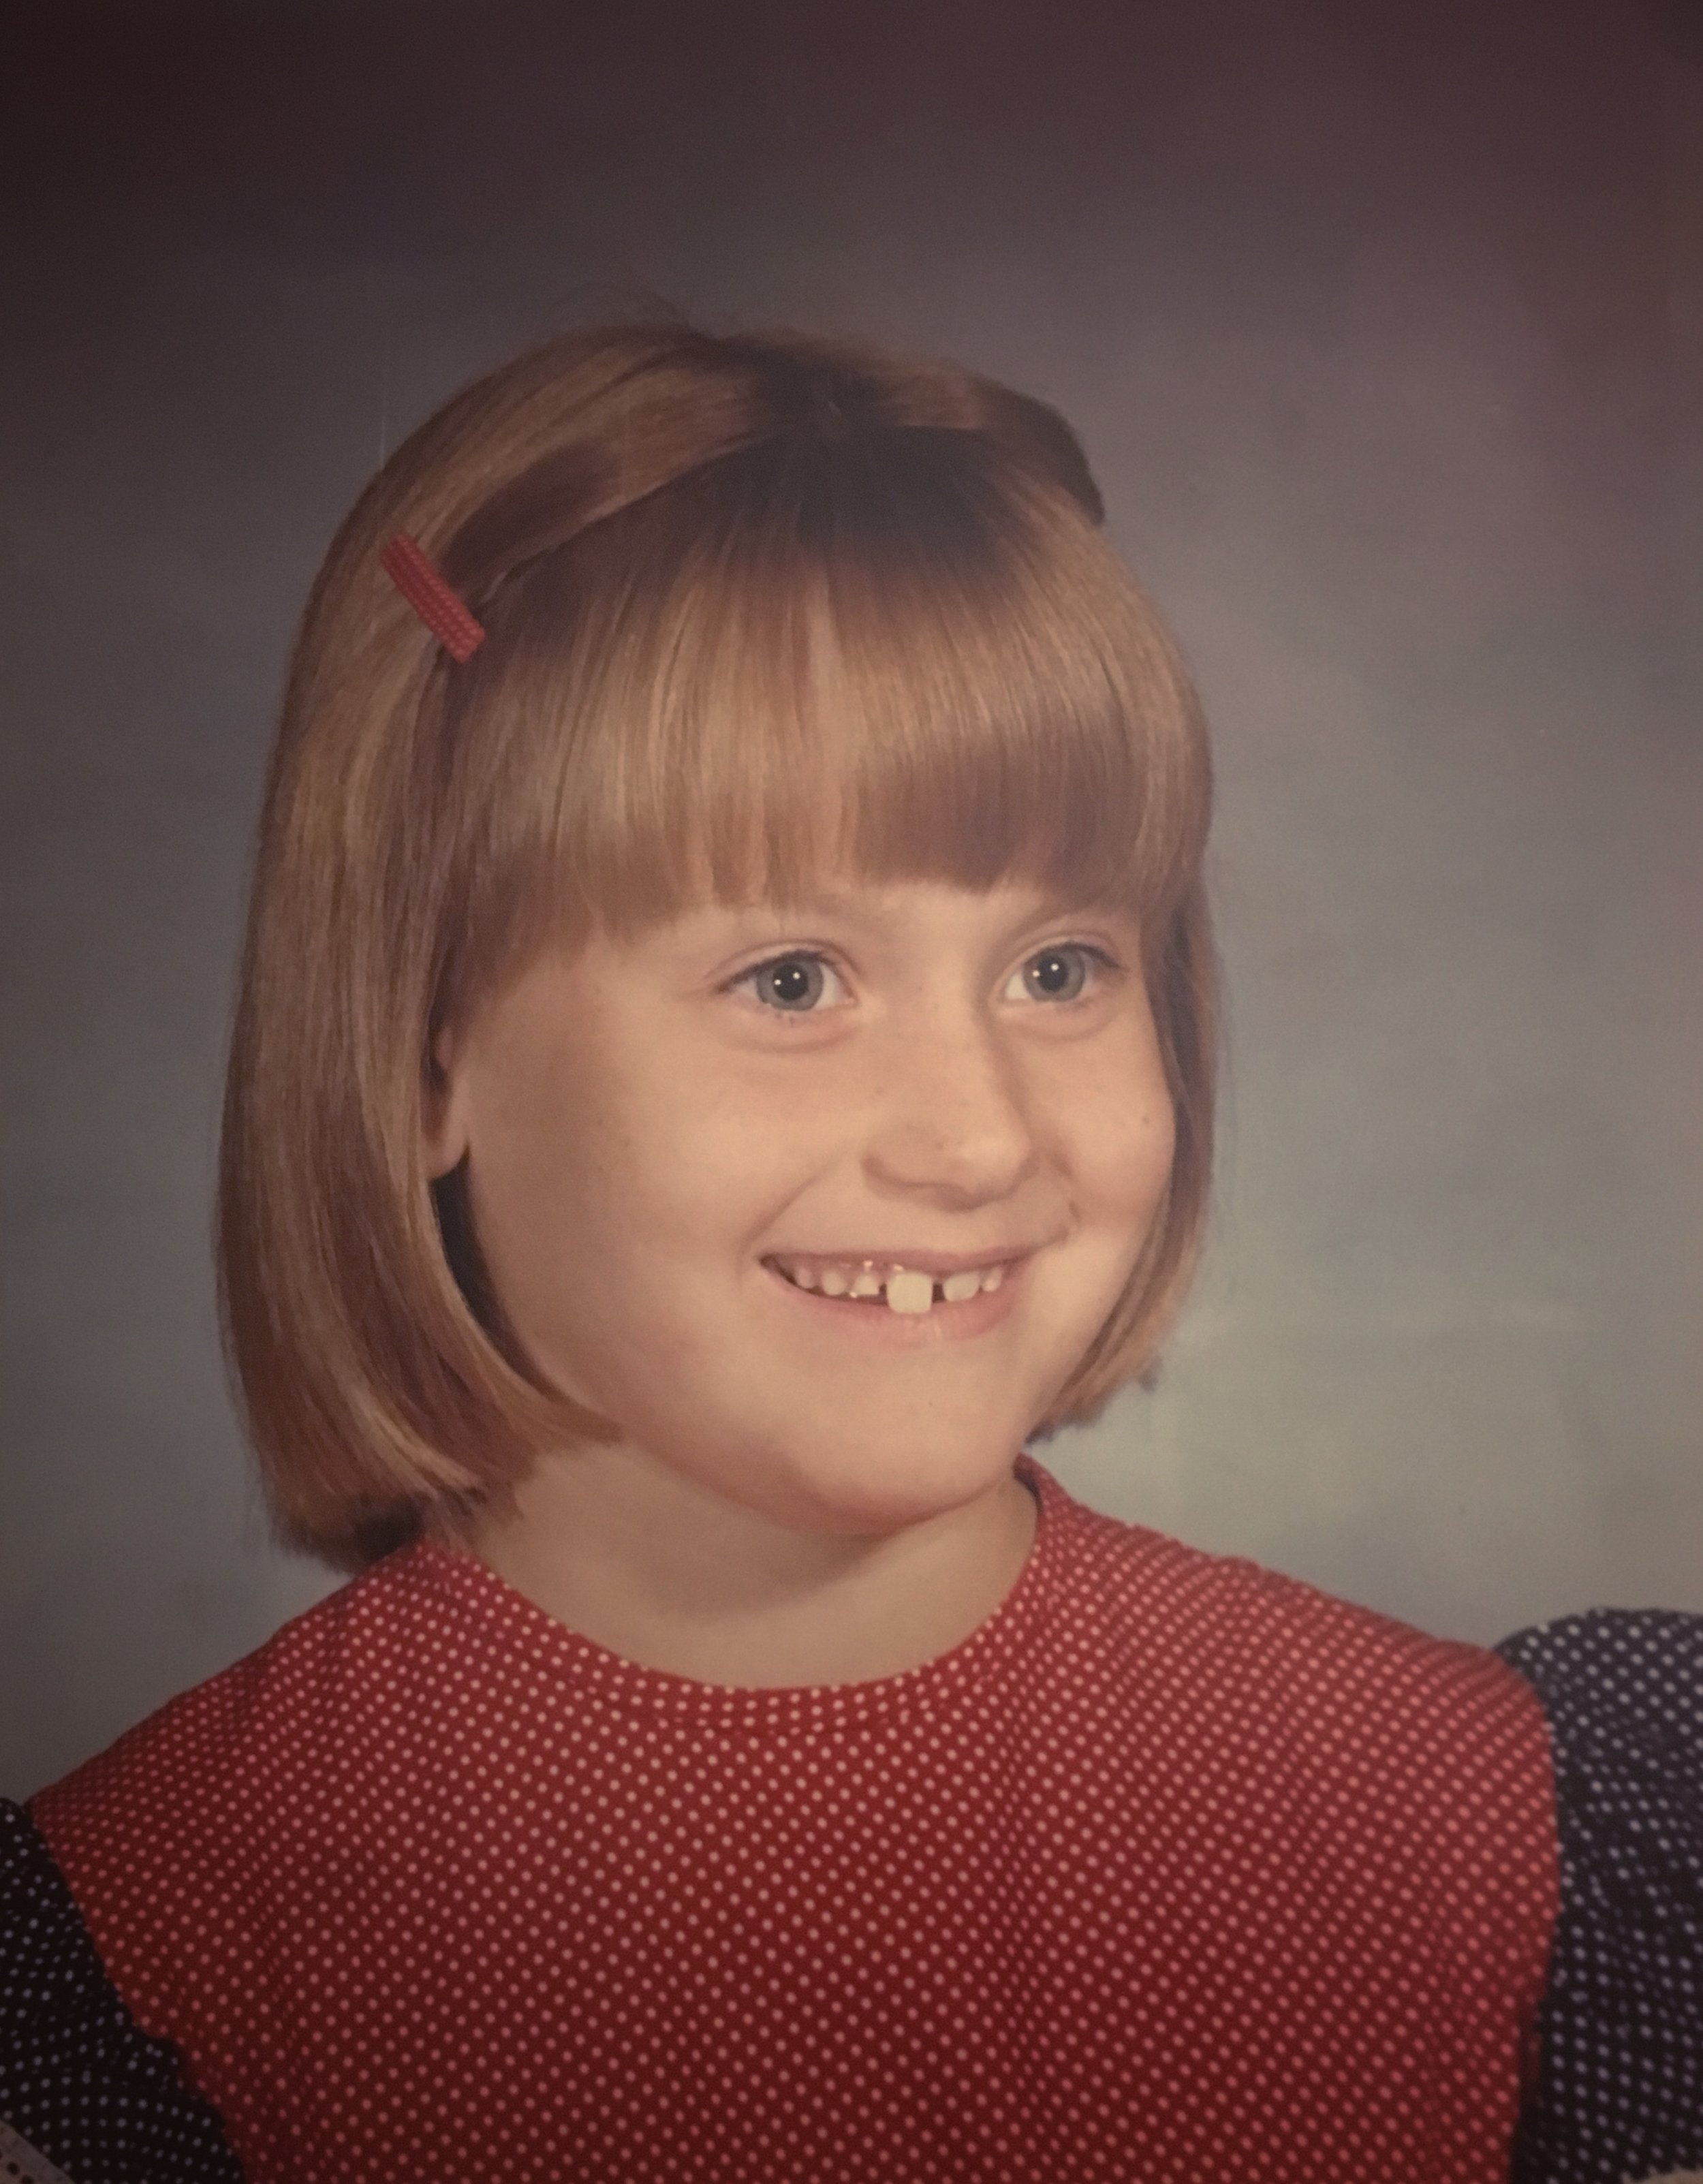 My 2nd grade school picture. And yeah, that's a red, white, and blue dress. 'Merica!